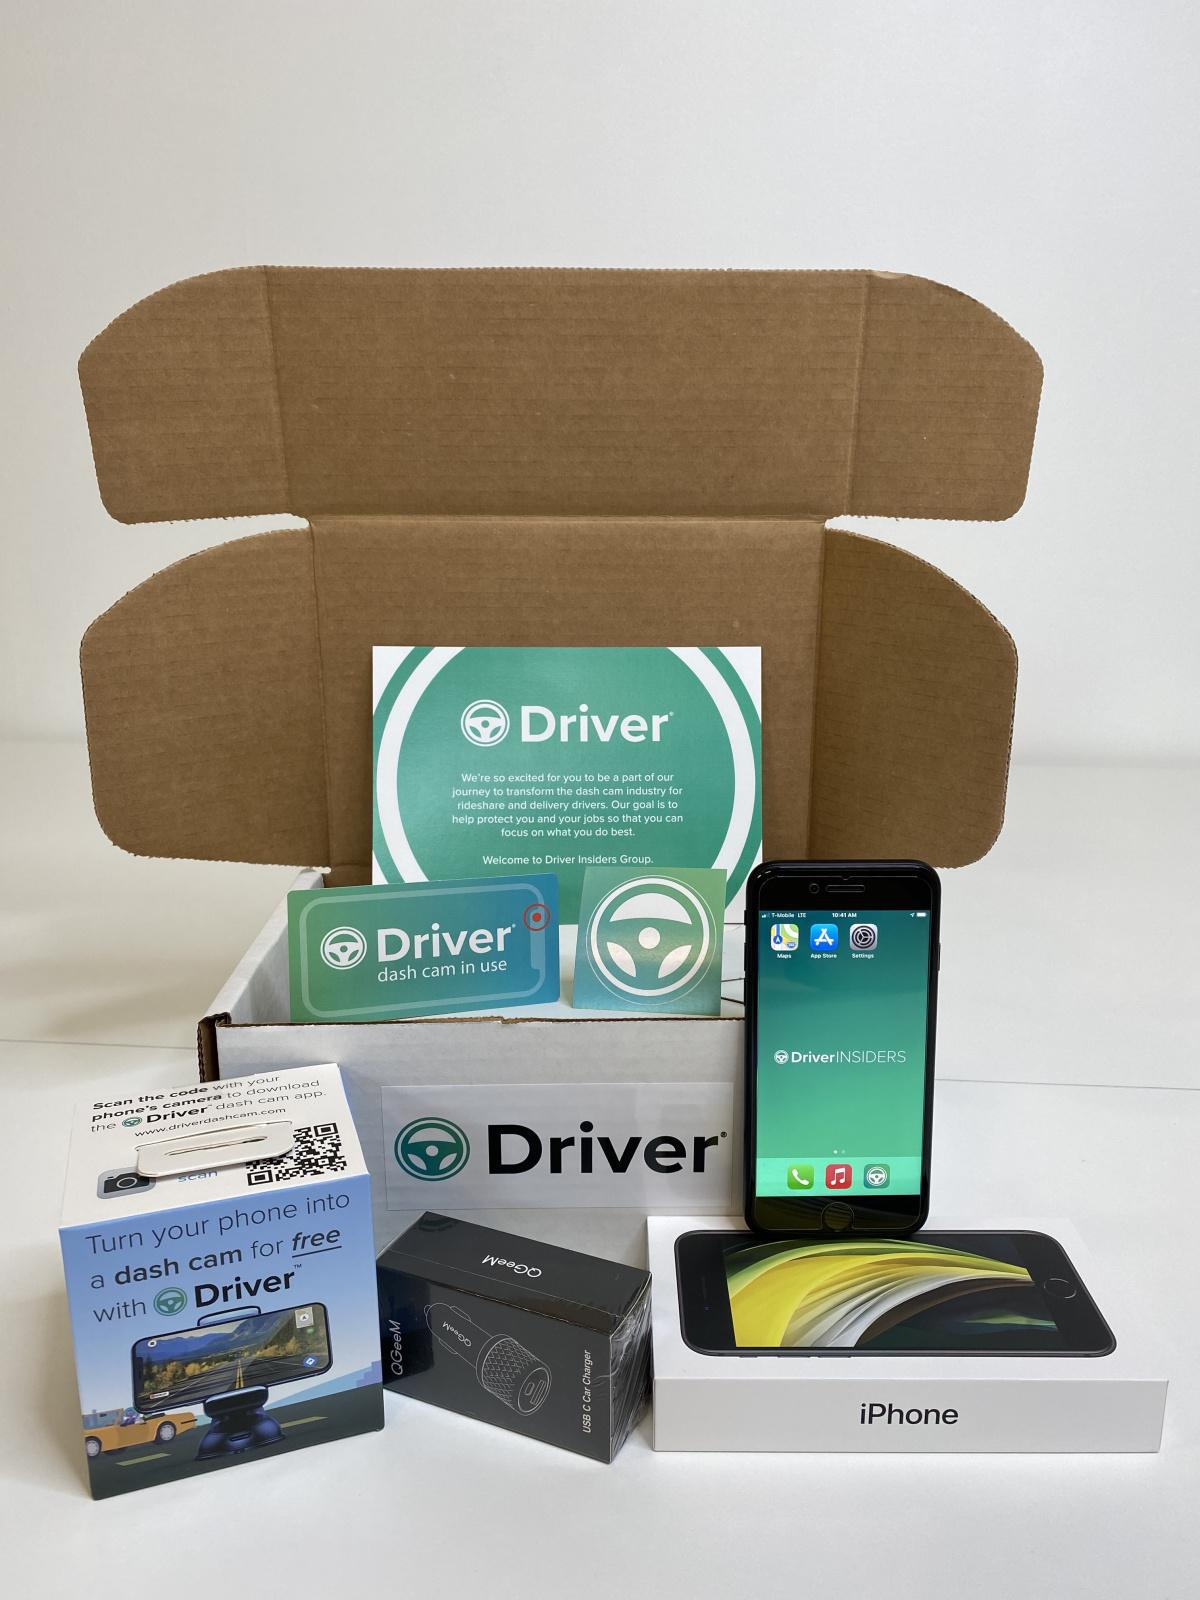 Driver, The Dash Cam App that turns your phone into a dash cam!